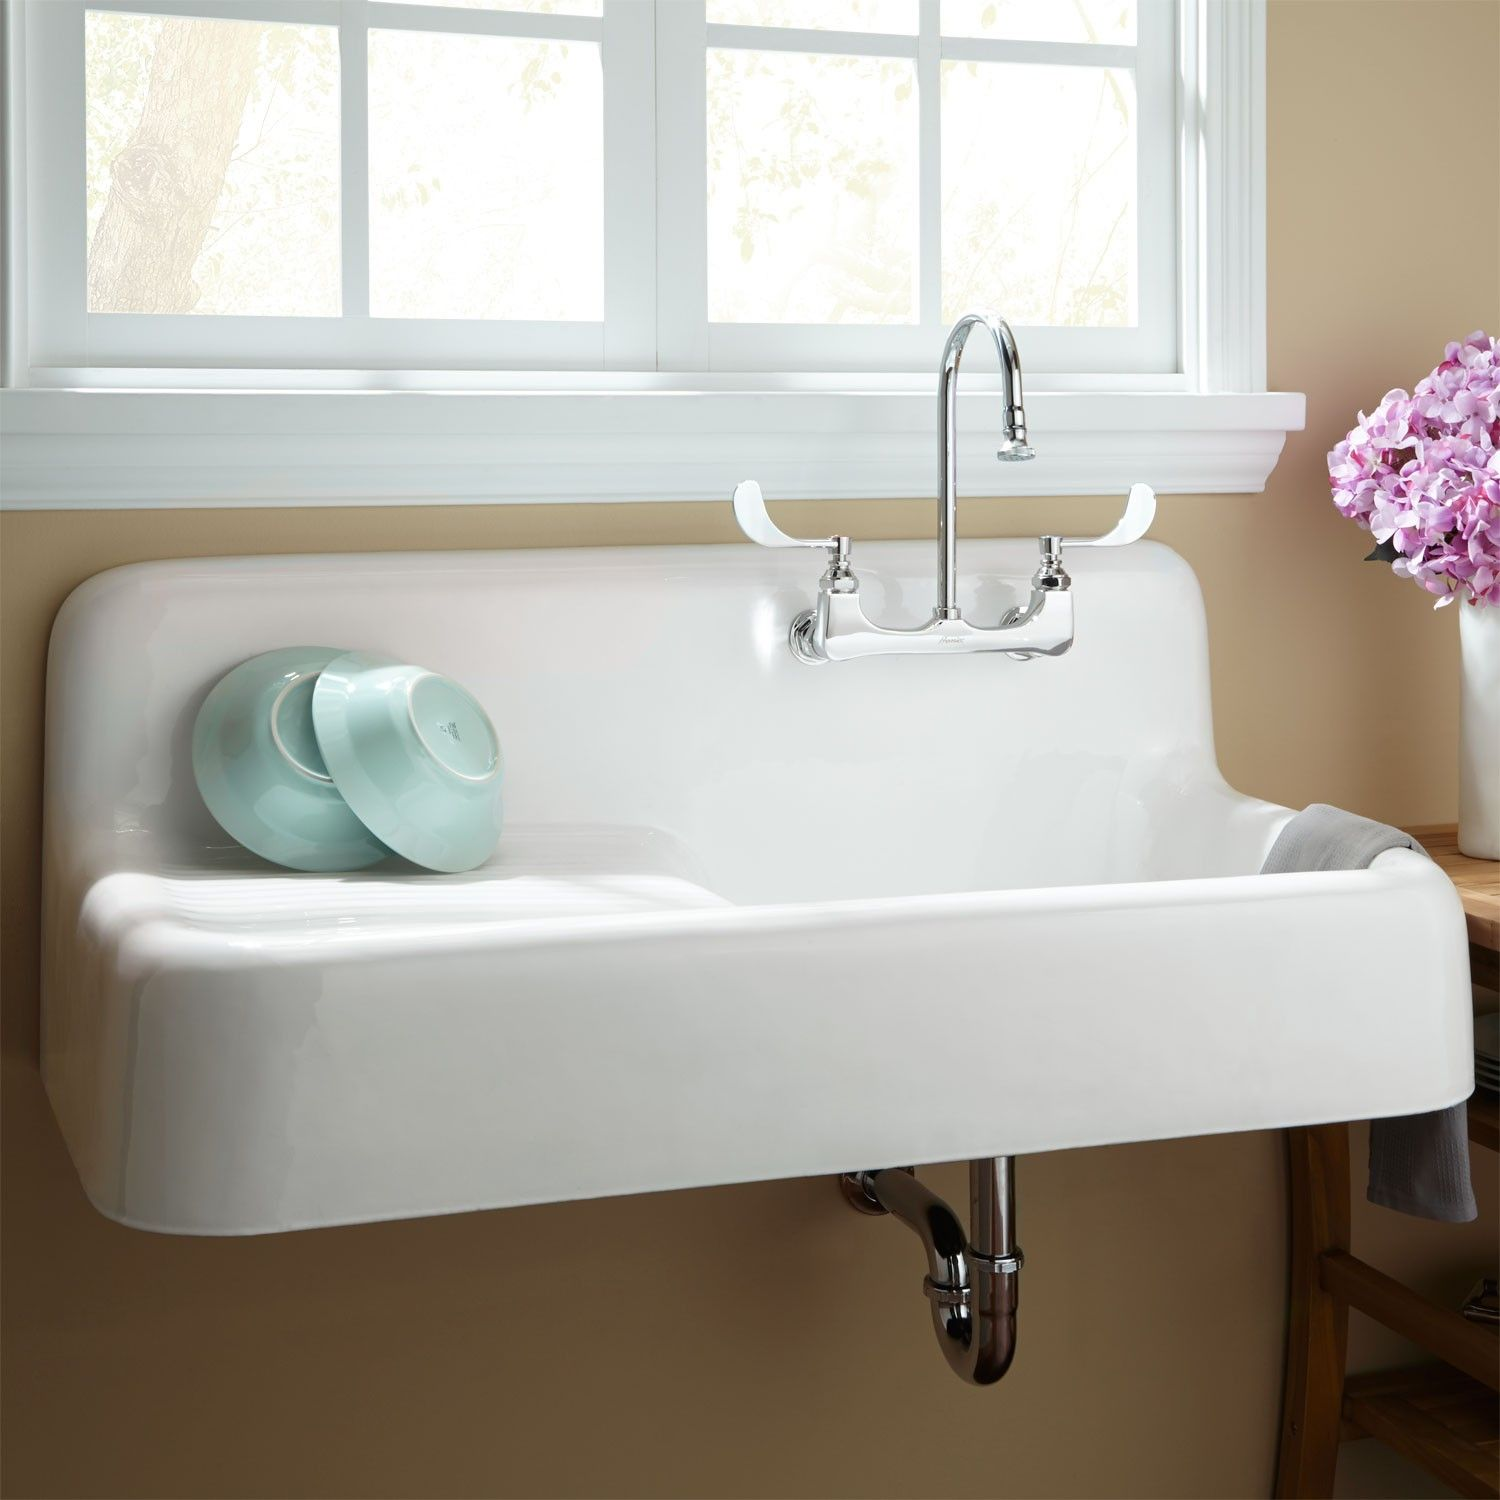 A Vintage Cast Iron Kitchen Sink With Drainboard Famous In The 1940s And  1950s. How